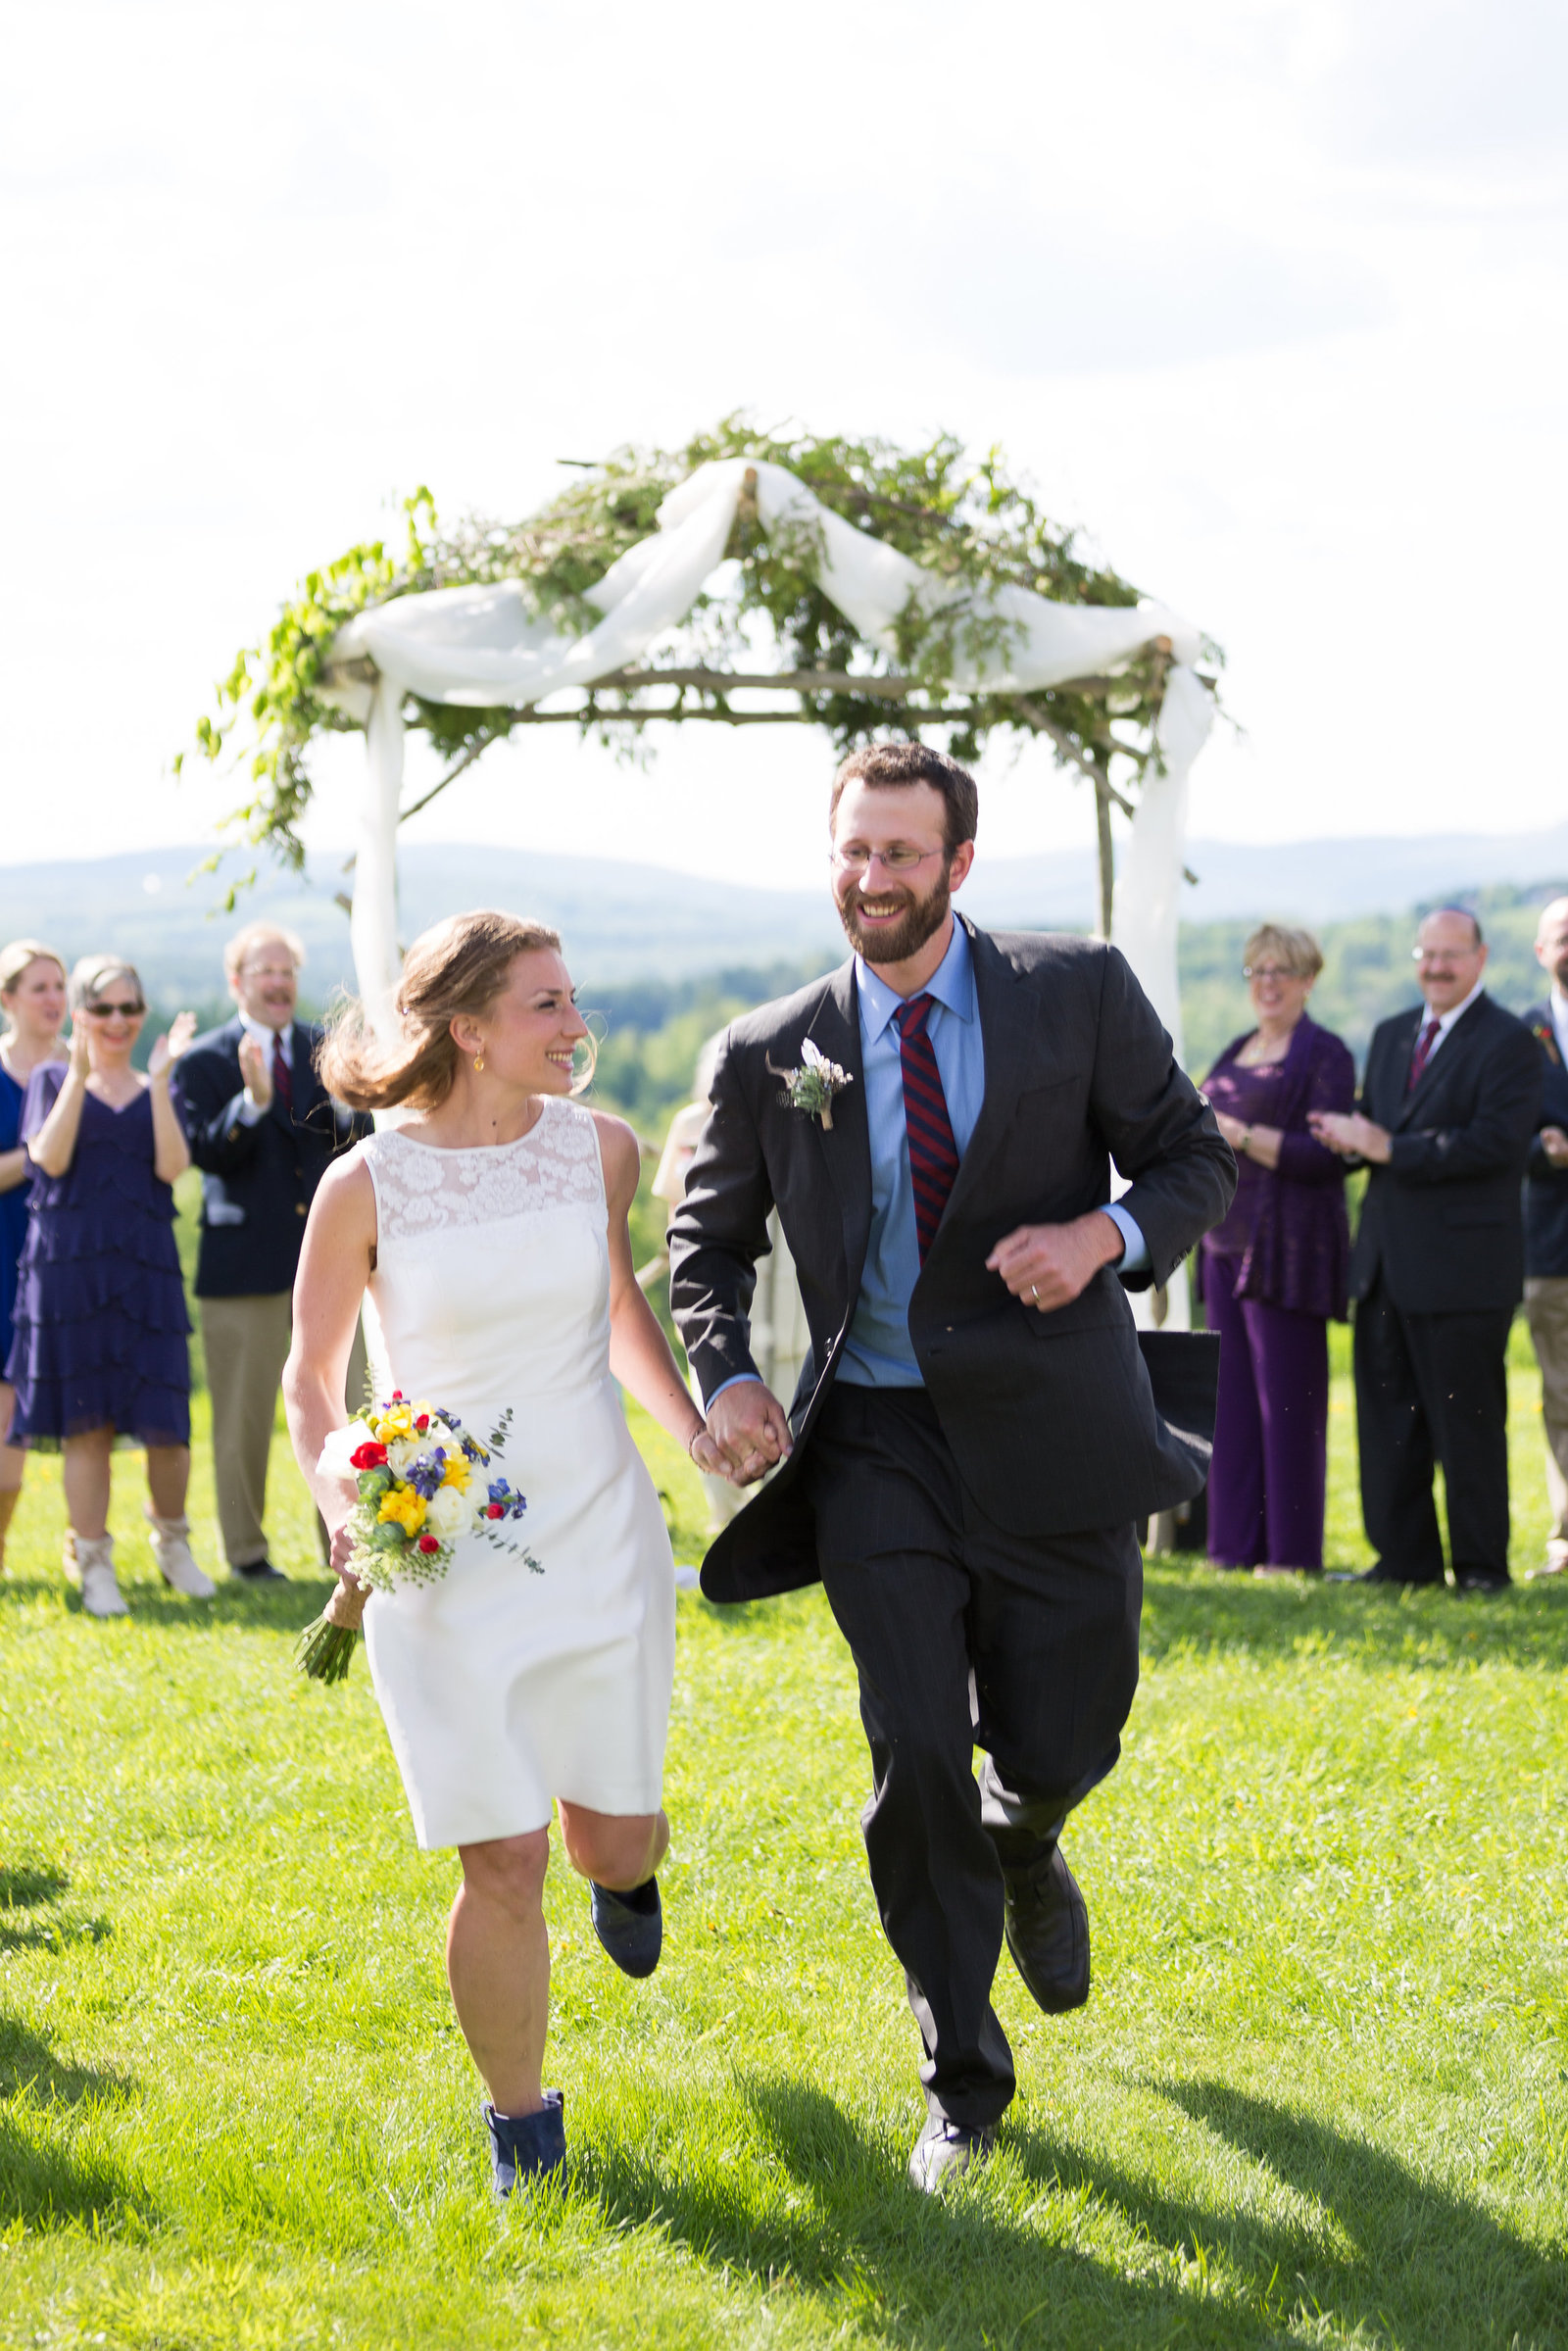 Vermont Jewish Wedding Ceremony